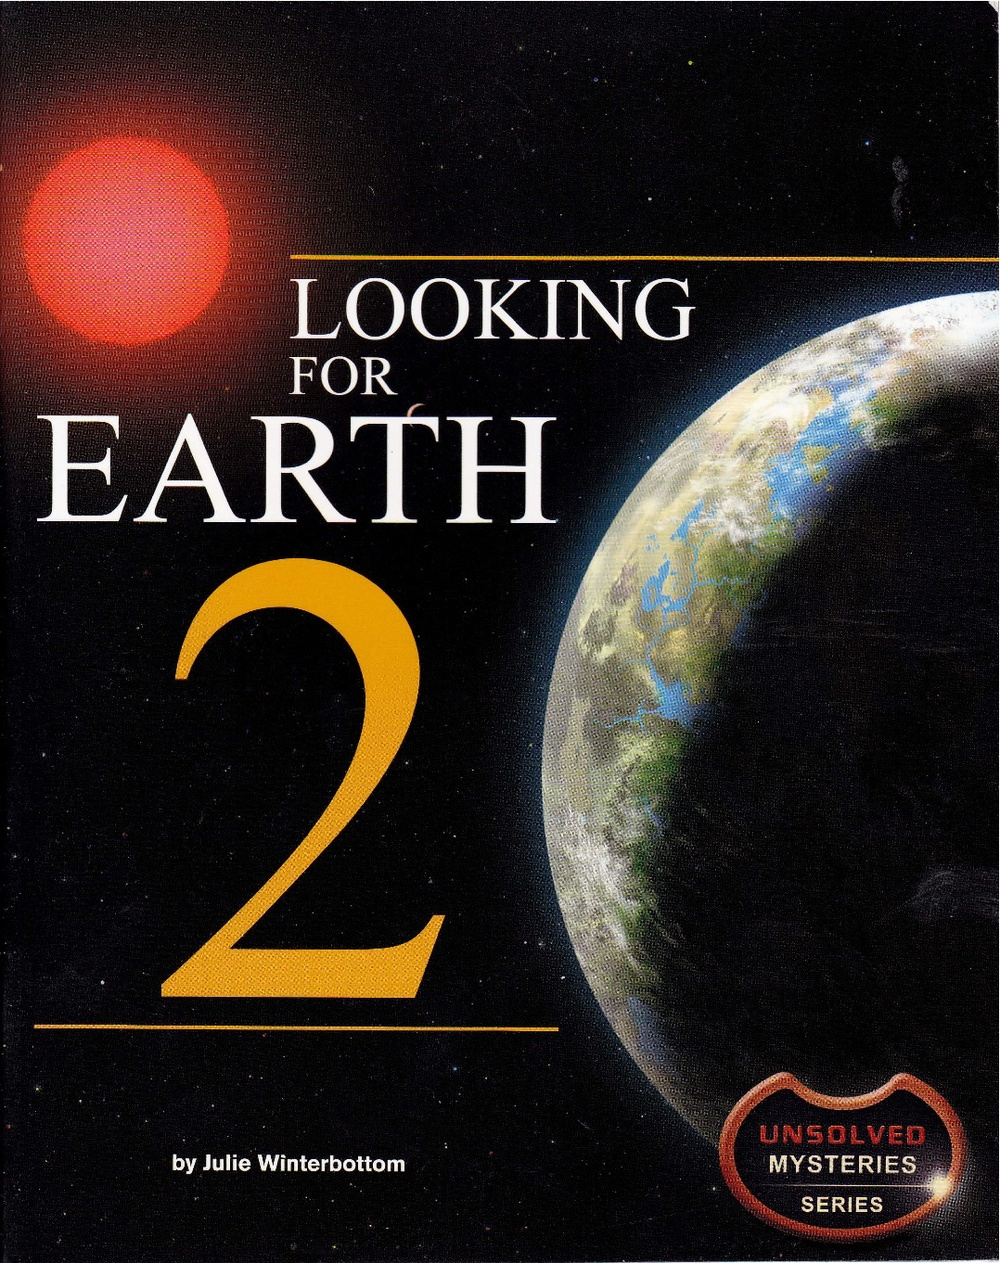 Looking for Earth 2